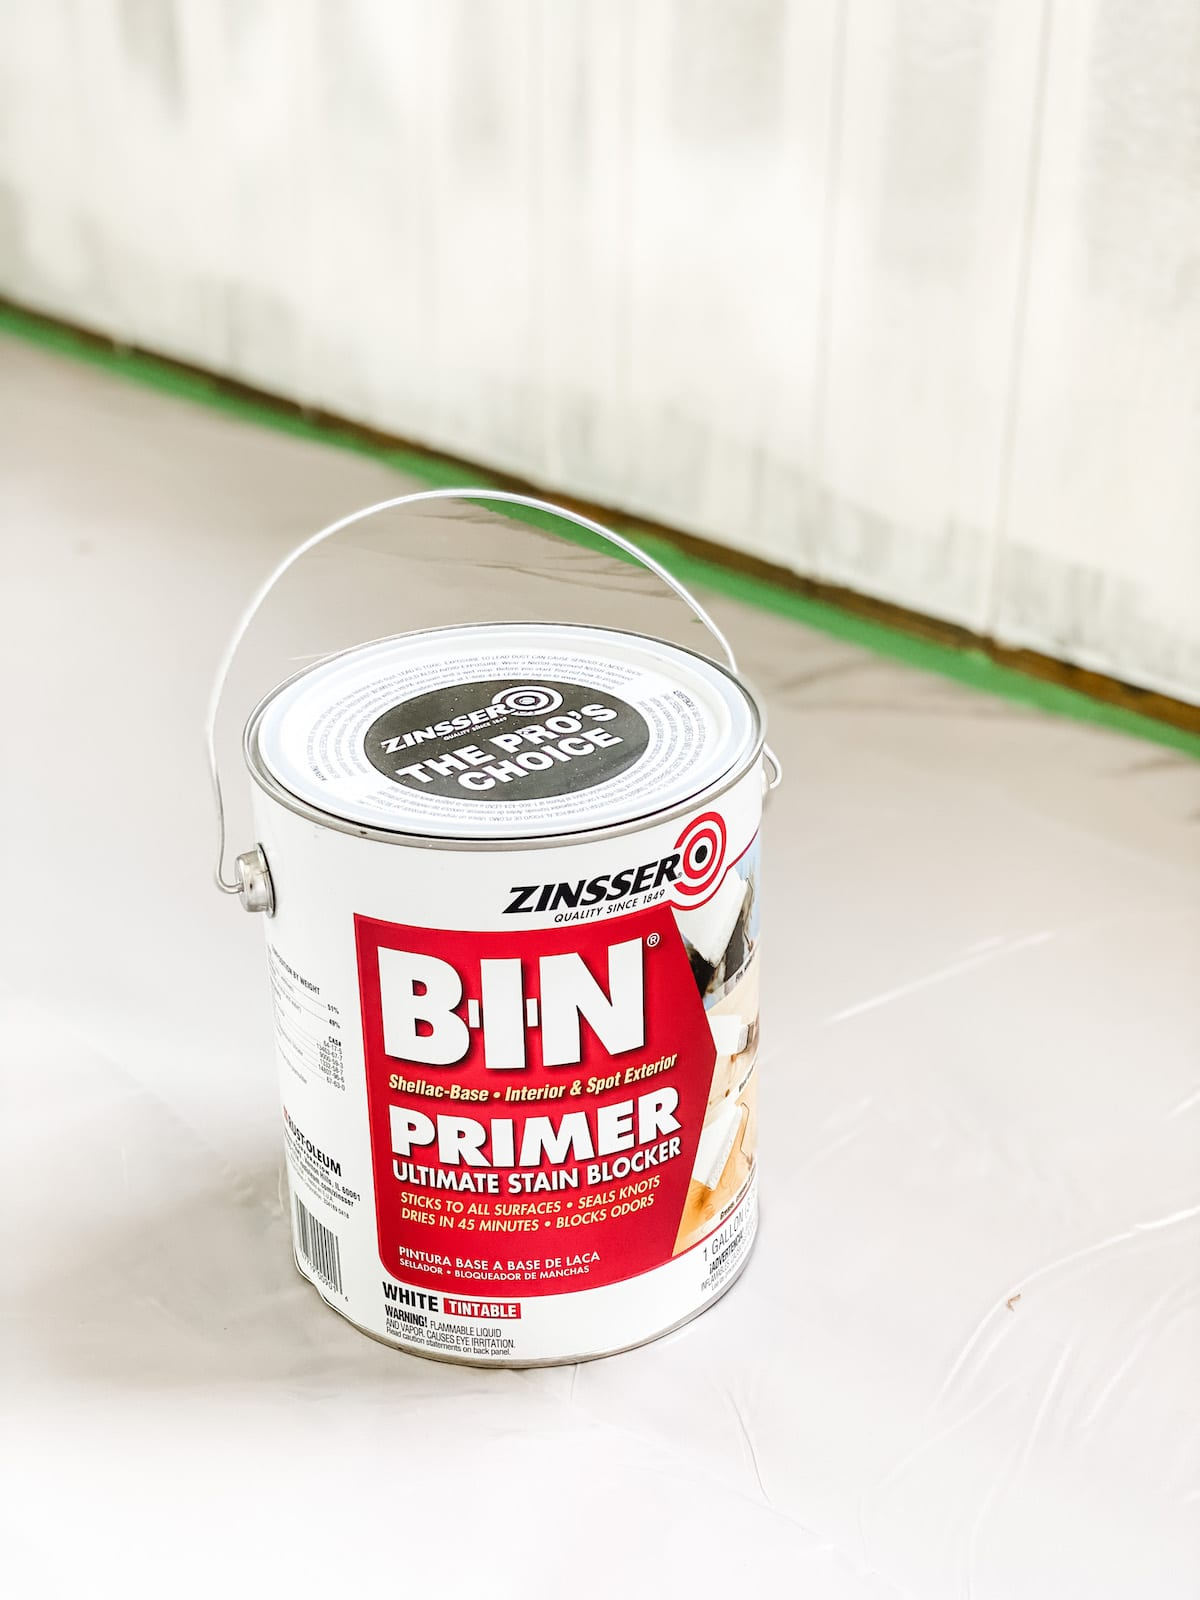 shellac-based primer for painting wood paneling